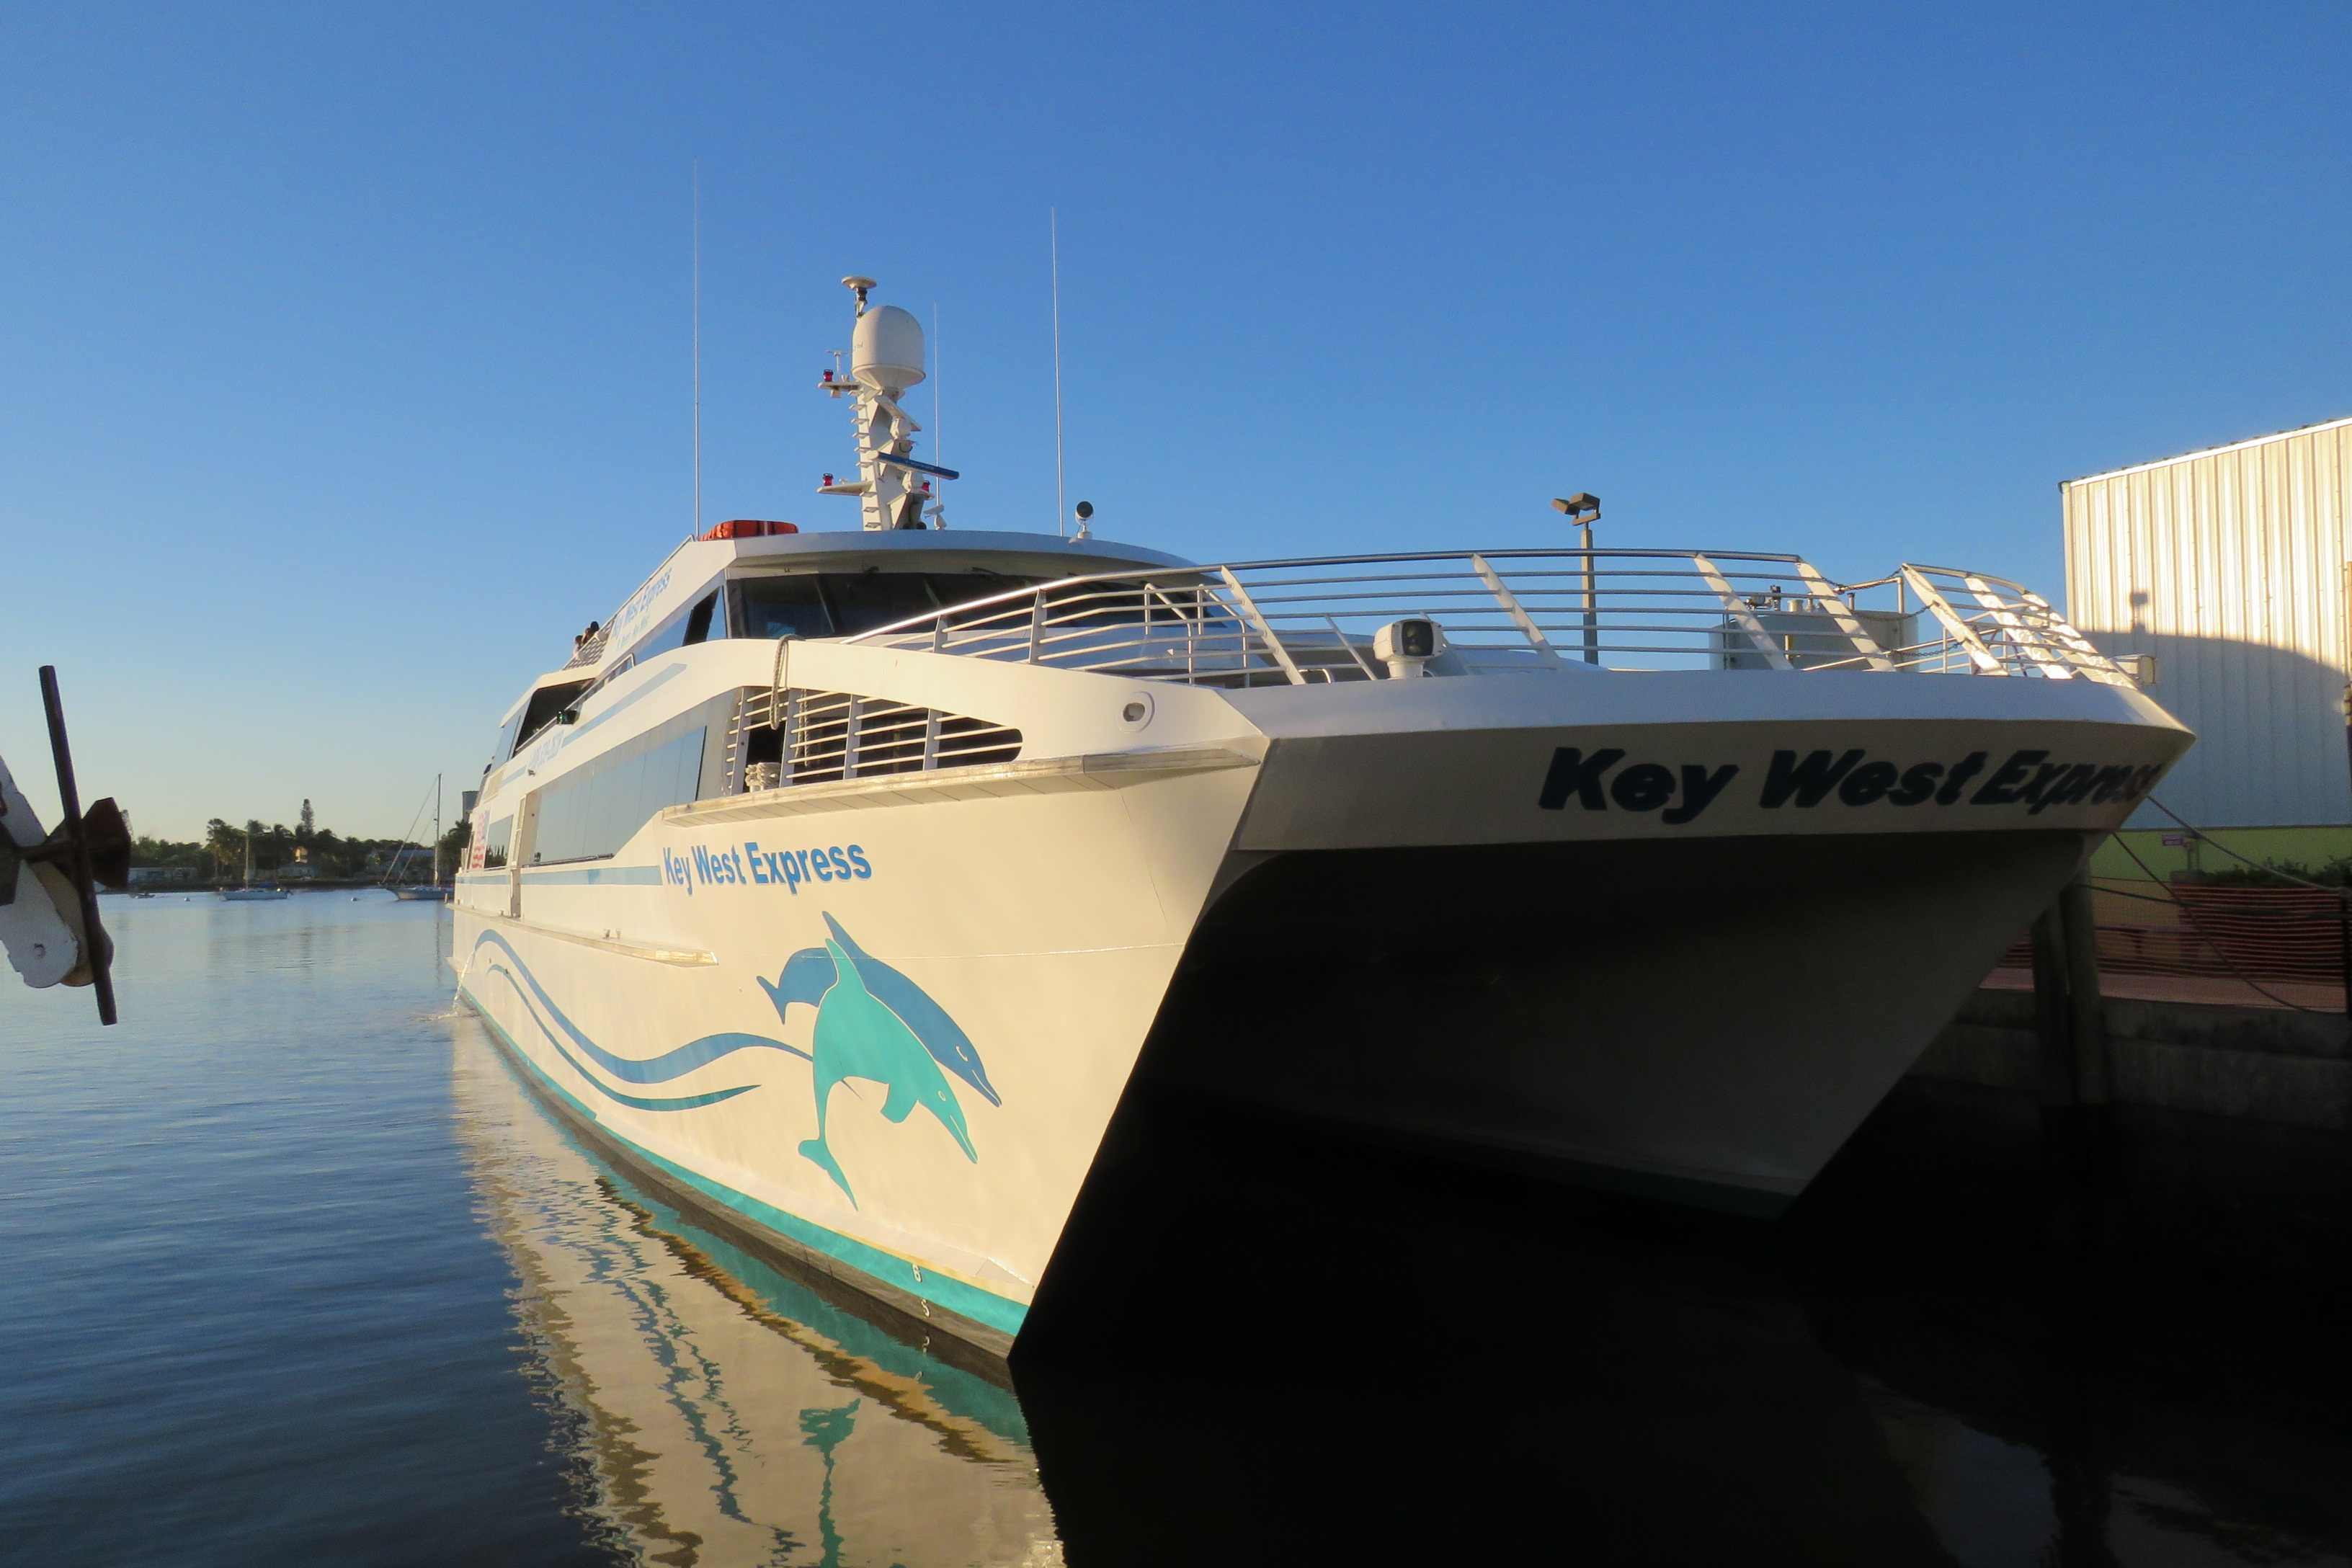 Riding the Wave of Success - The Key West Express